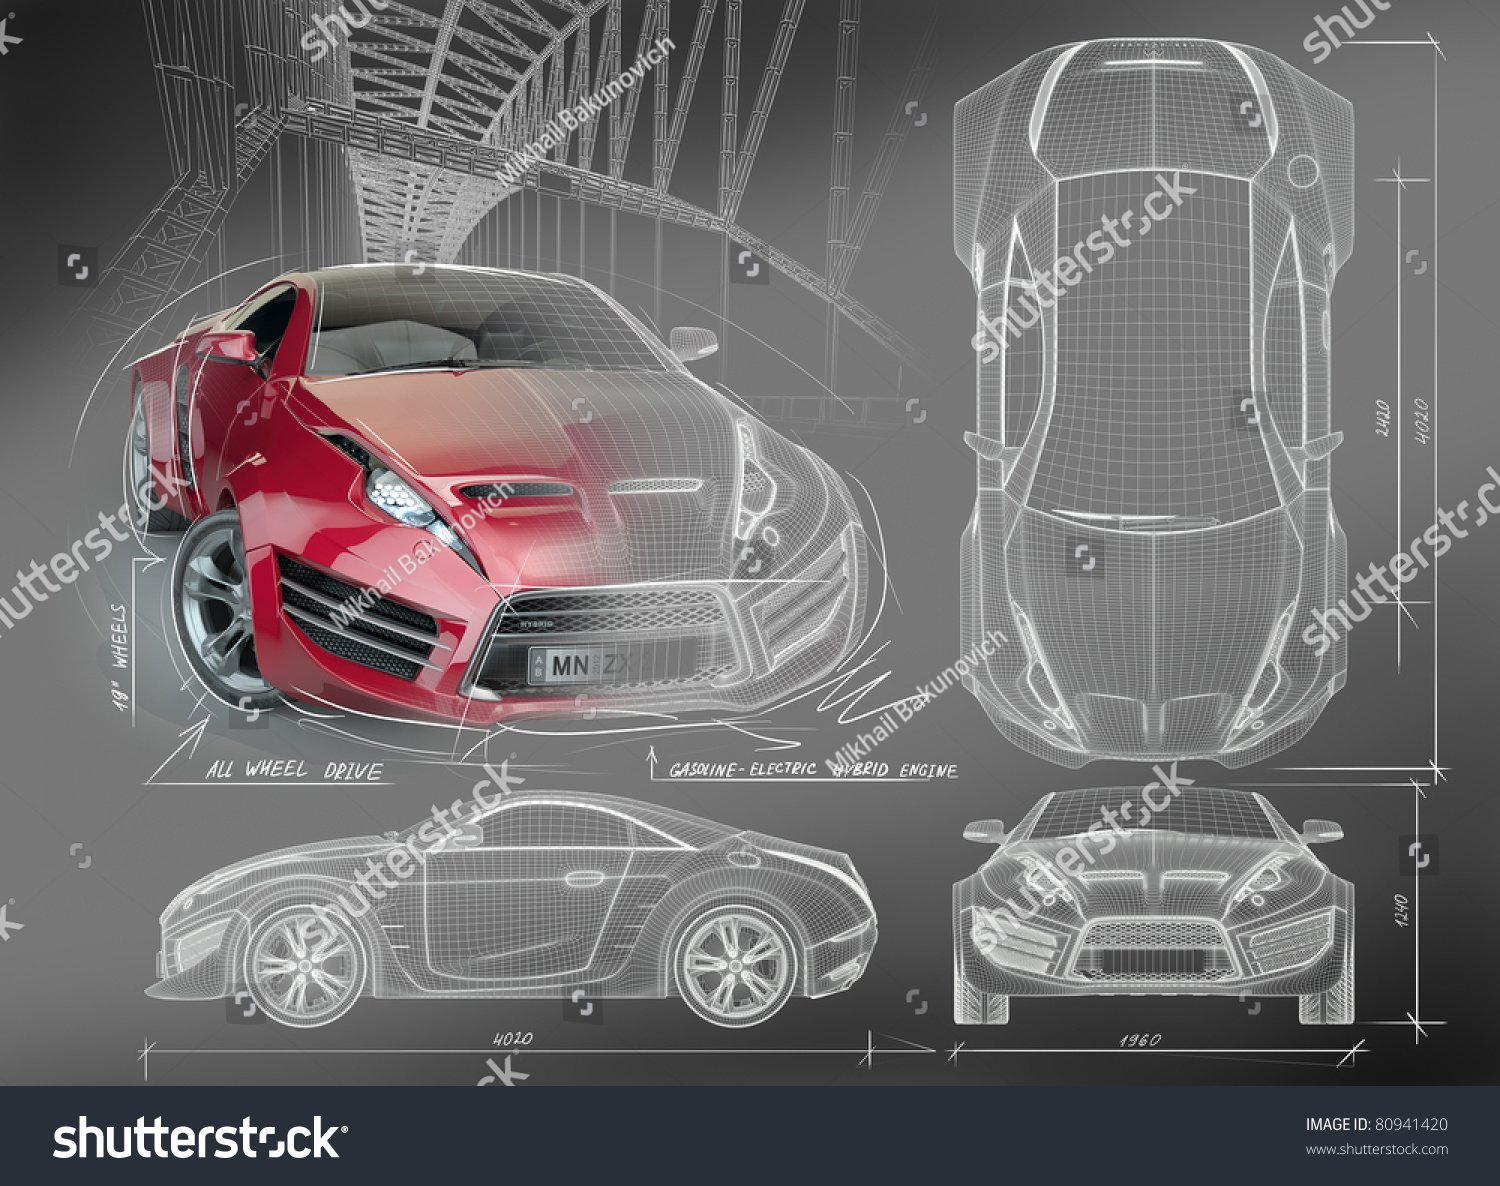 16 best blueprints concept cars images on pinterest cars a blueprint of a red concept car displays the car from four different angles malvernweather Choice Image